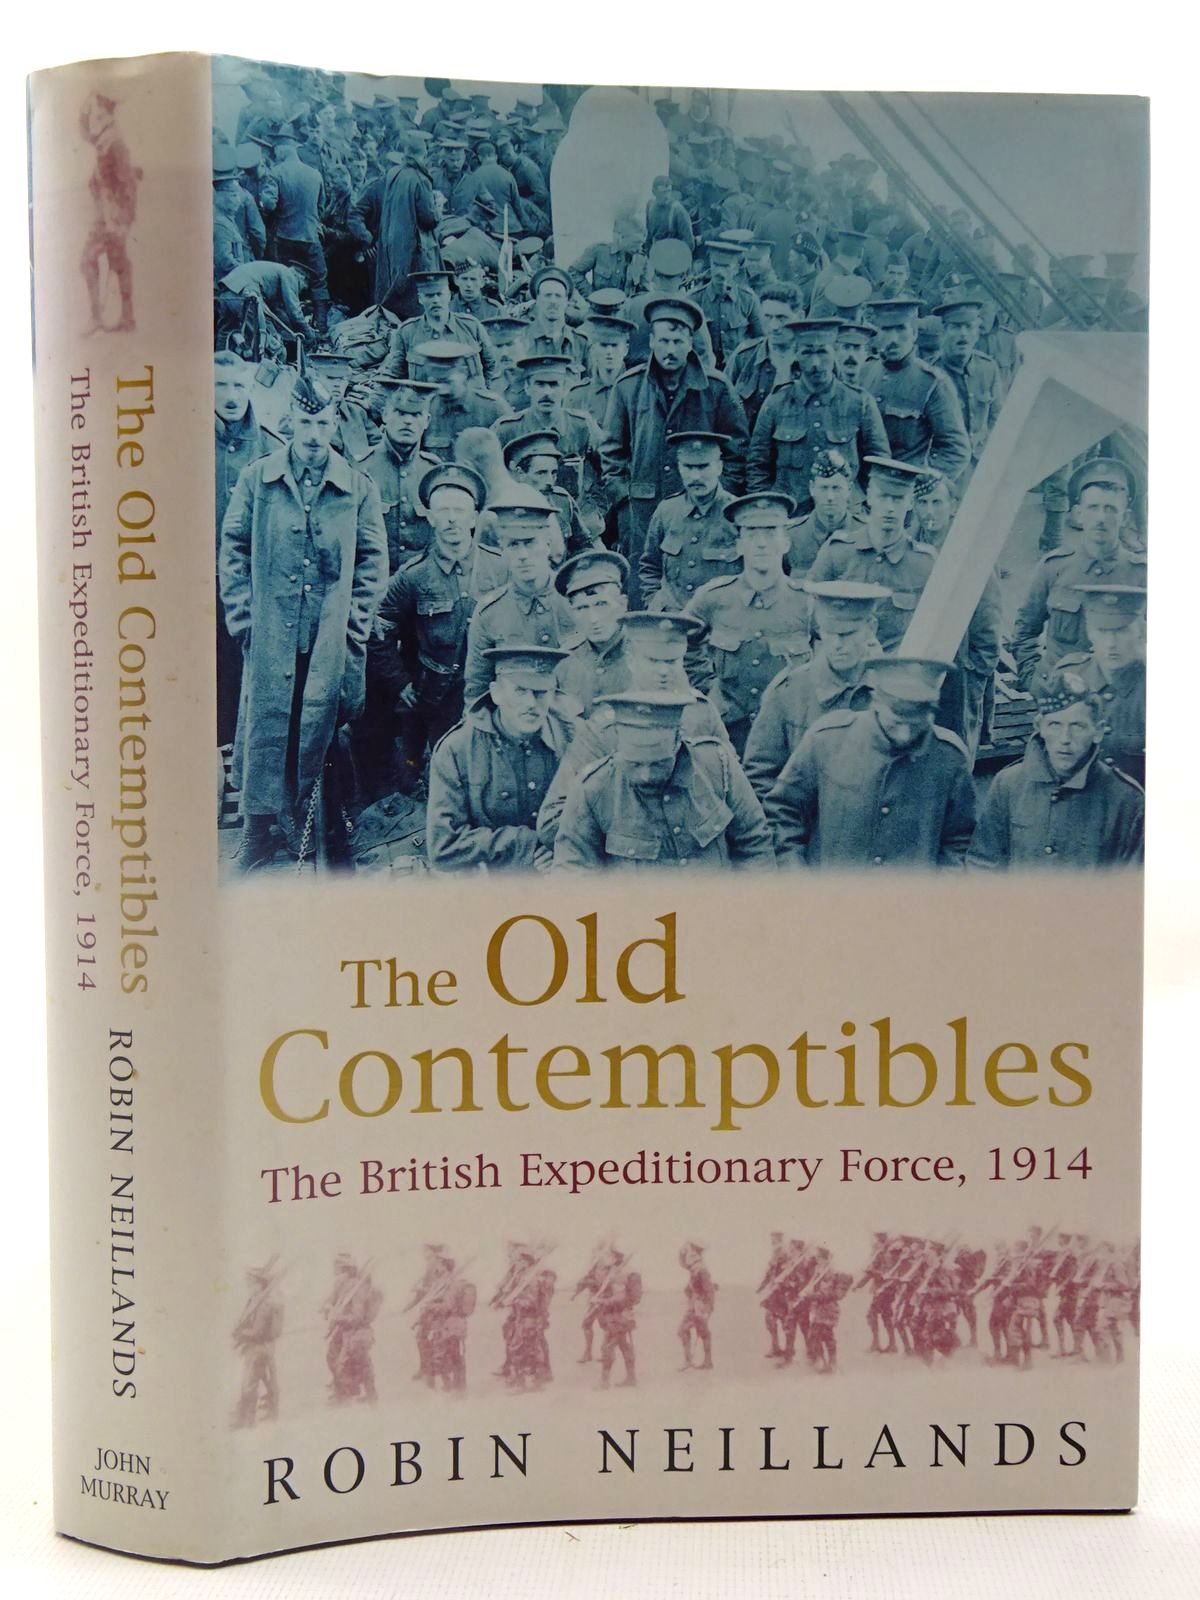 Photo of THE OLD CONTEMPTIBLES THE BRITISH EXPEDITIONARY FORCE, 1914 written by Neillands, Robin published by John Murray (STOCK CODE: 2127197)  for sale by Stella & Rose's Books